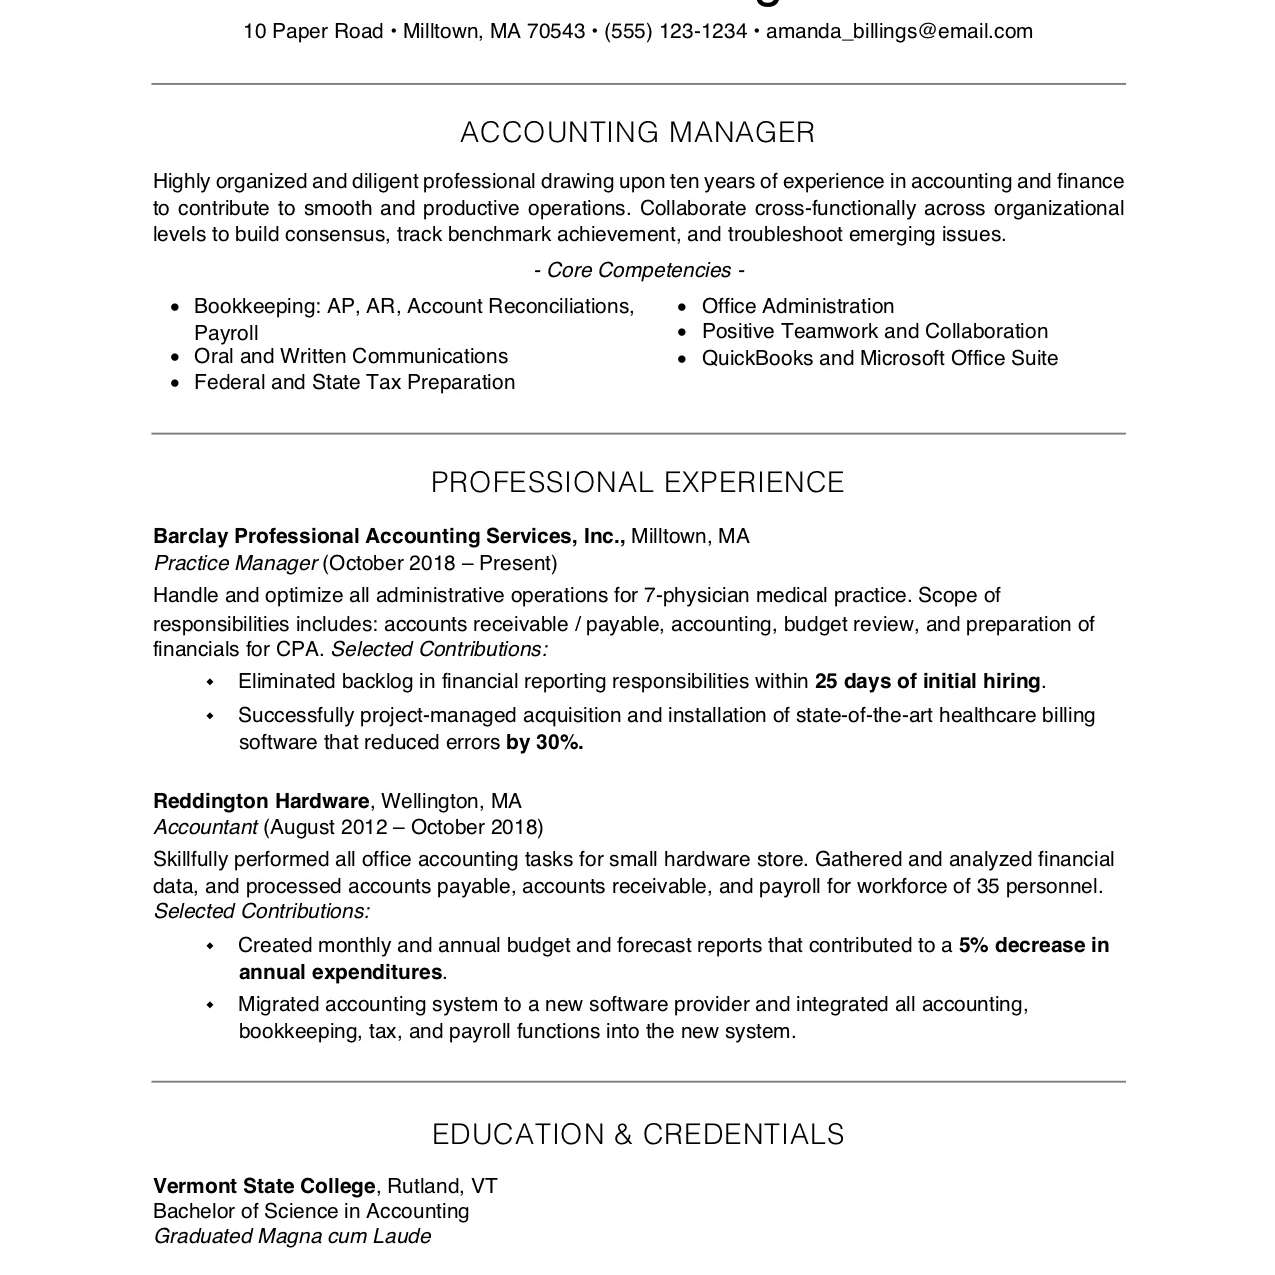 free professional resume examples and writing tips 2063596res1 microsoft word template Resume Professional Resume Resume Examples